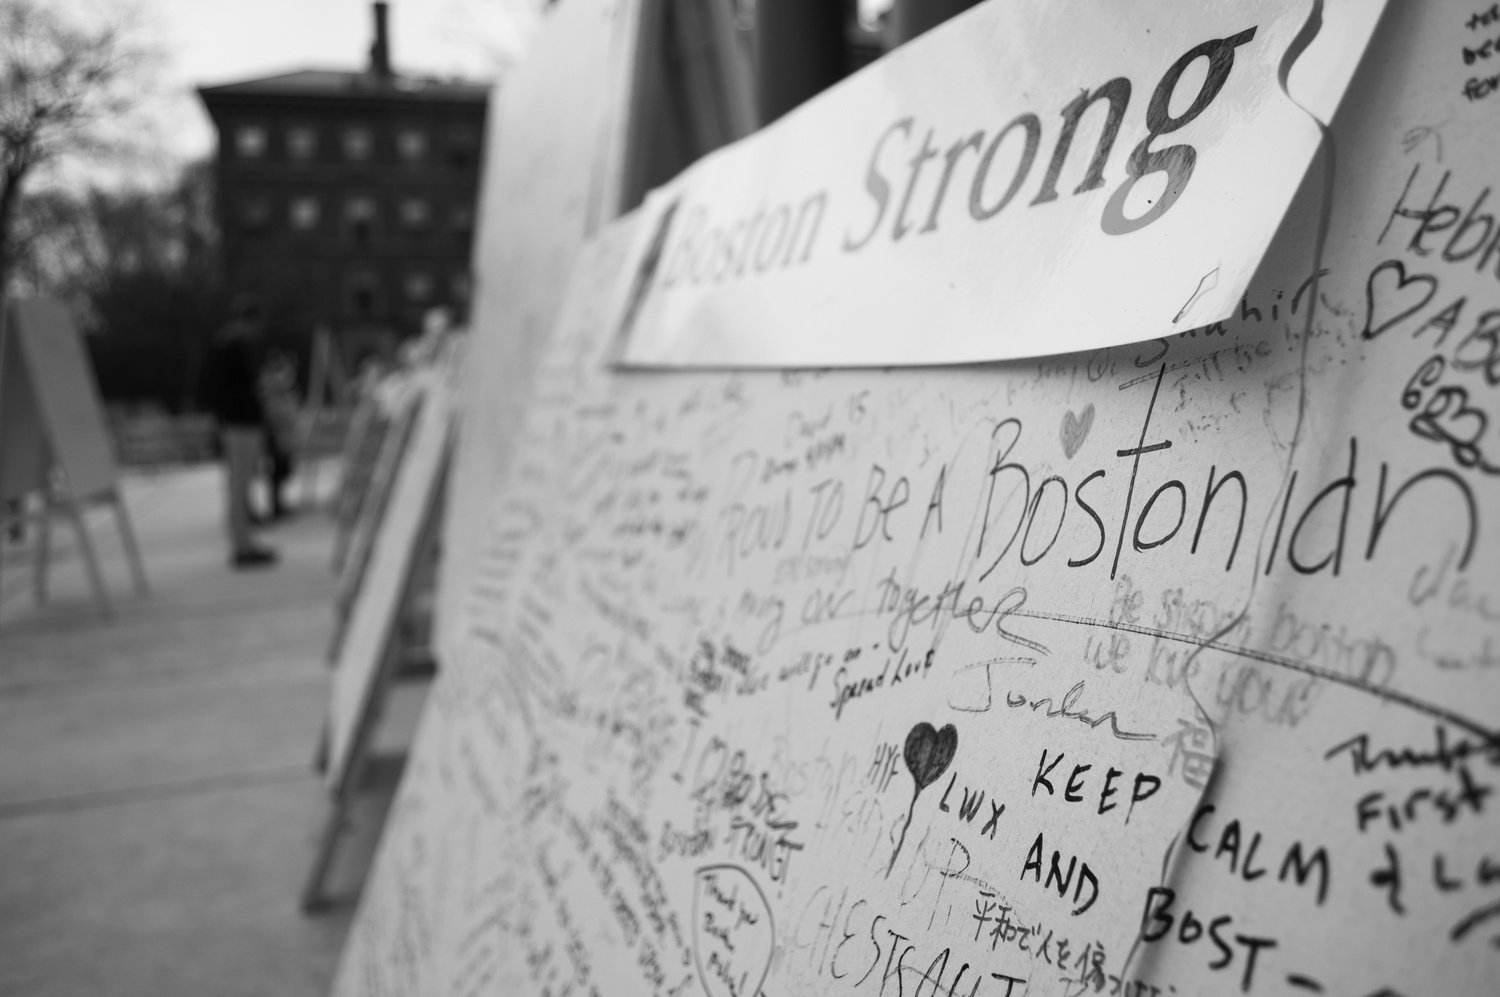 Handwritten messages line the remembrance walls brought out for the anniversary of the Boston Marathon Bombings.